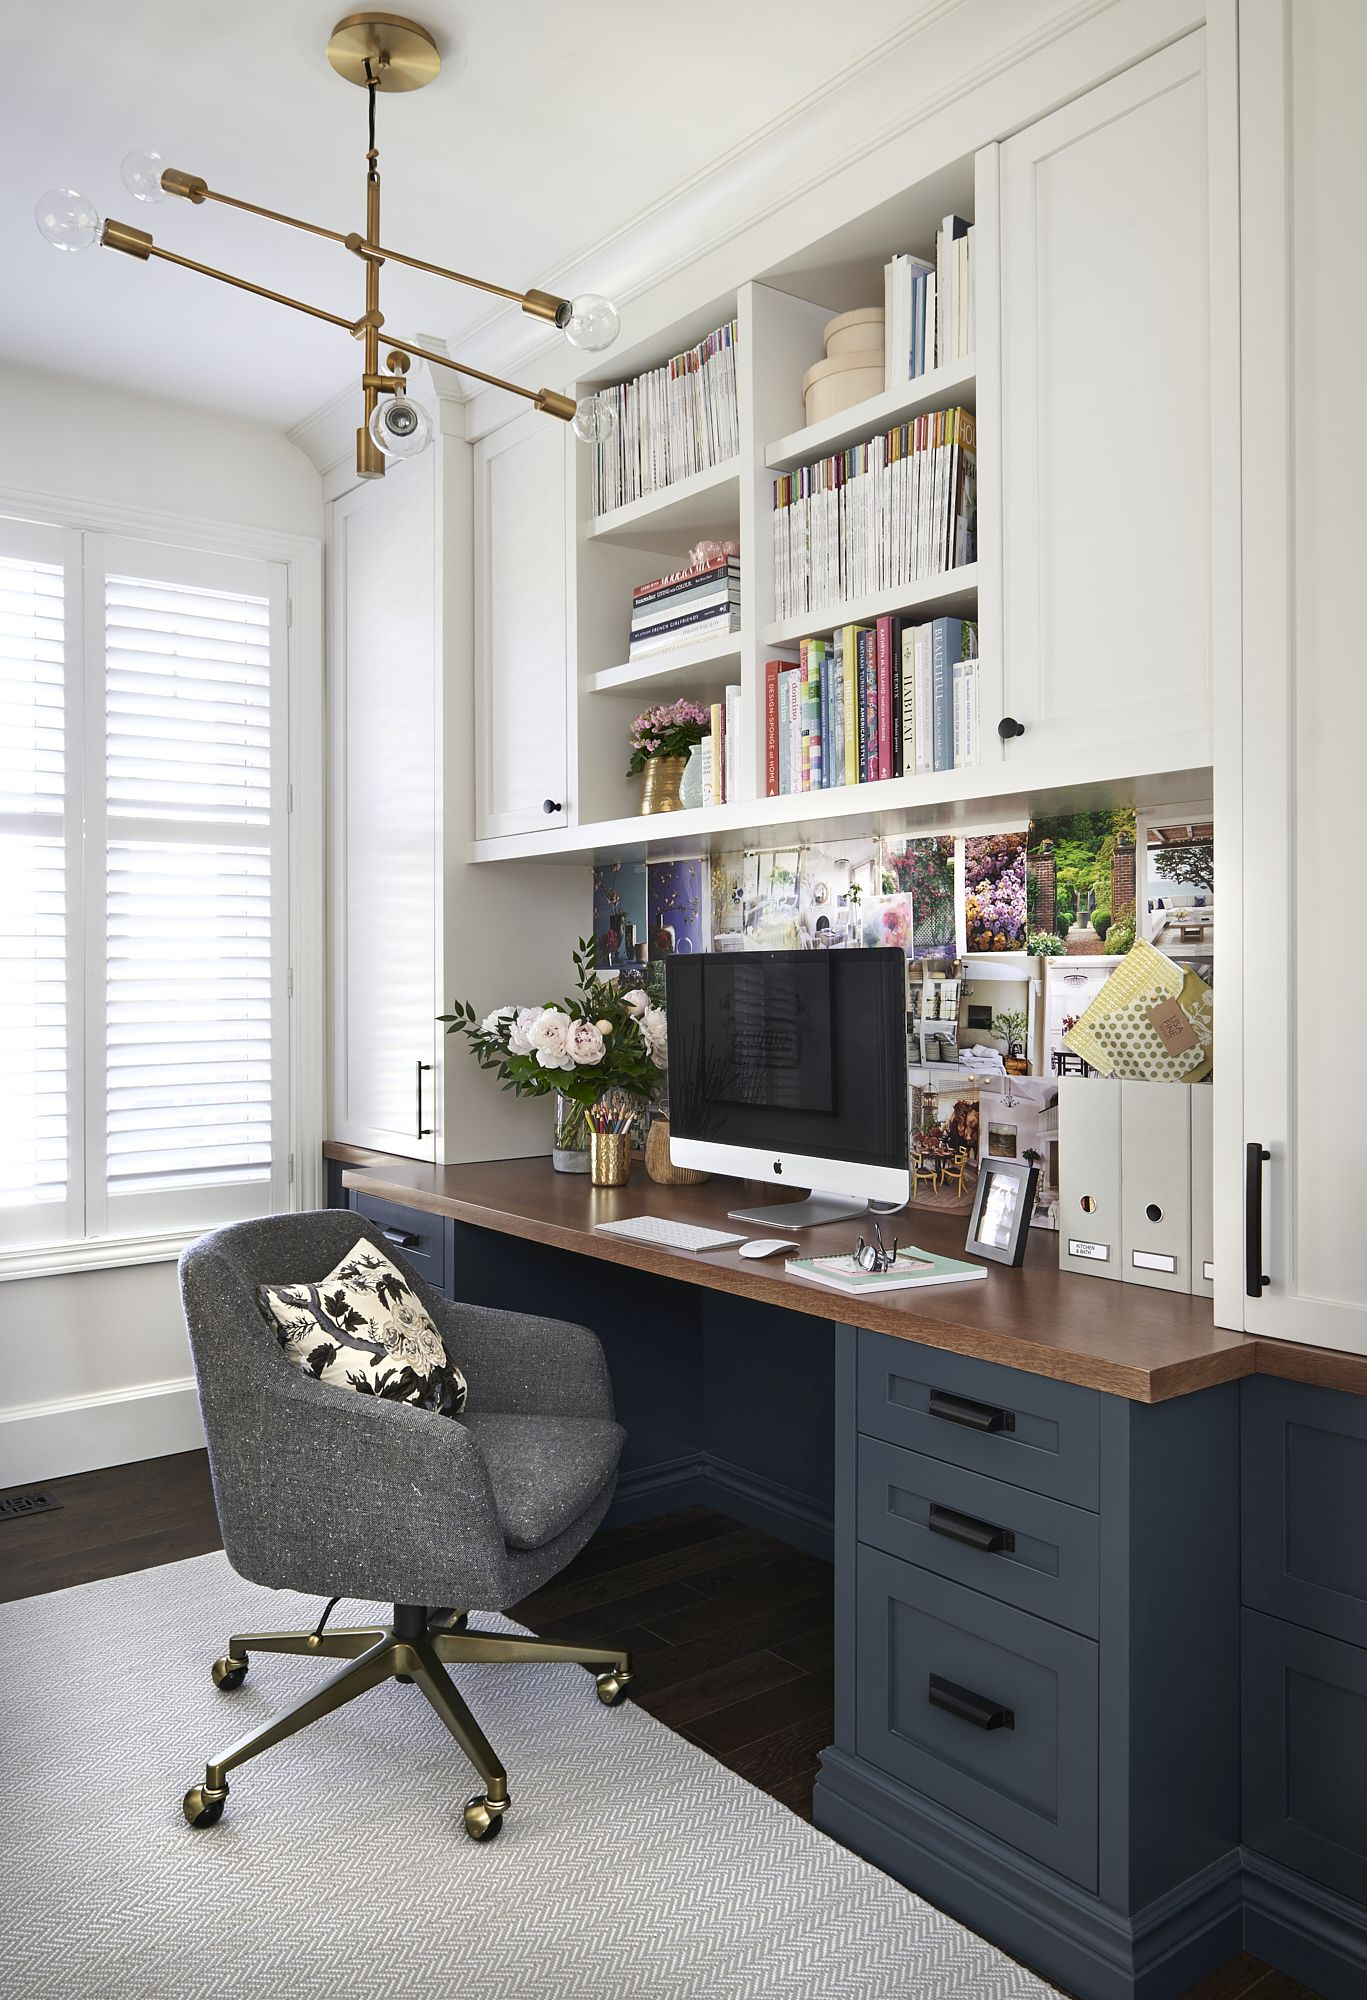 inspiring home office cabinet design ideas house building dreams pinterest cabinets and also rh